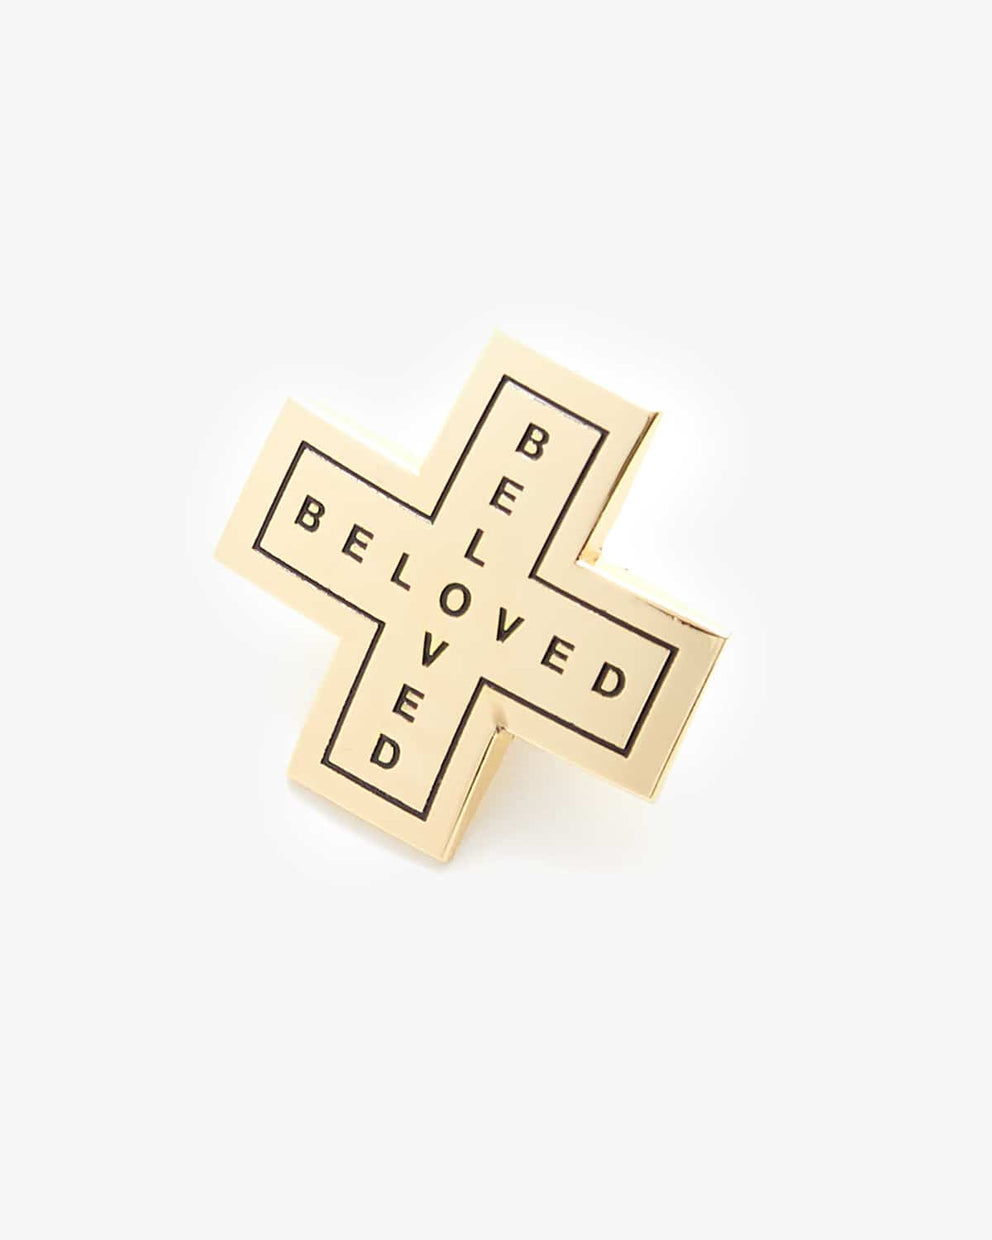 'Cross' Enamel Pin - Gold/Black